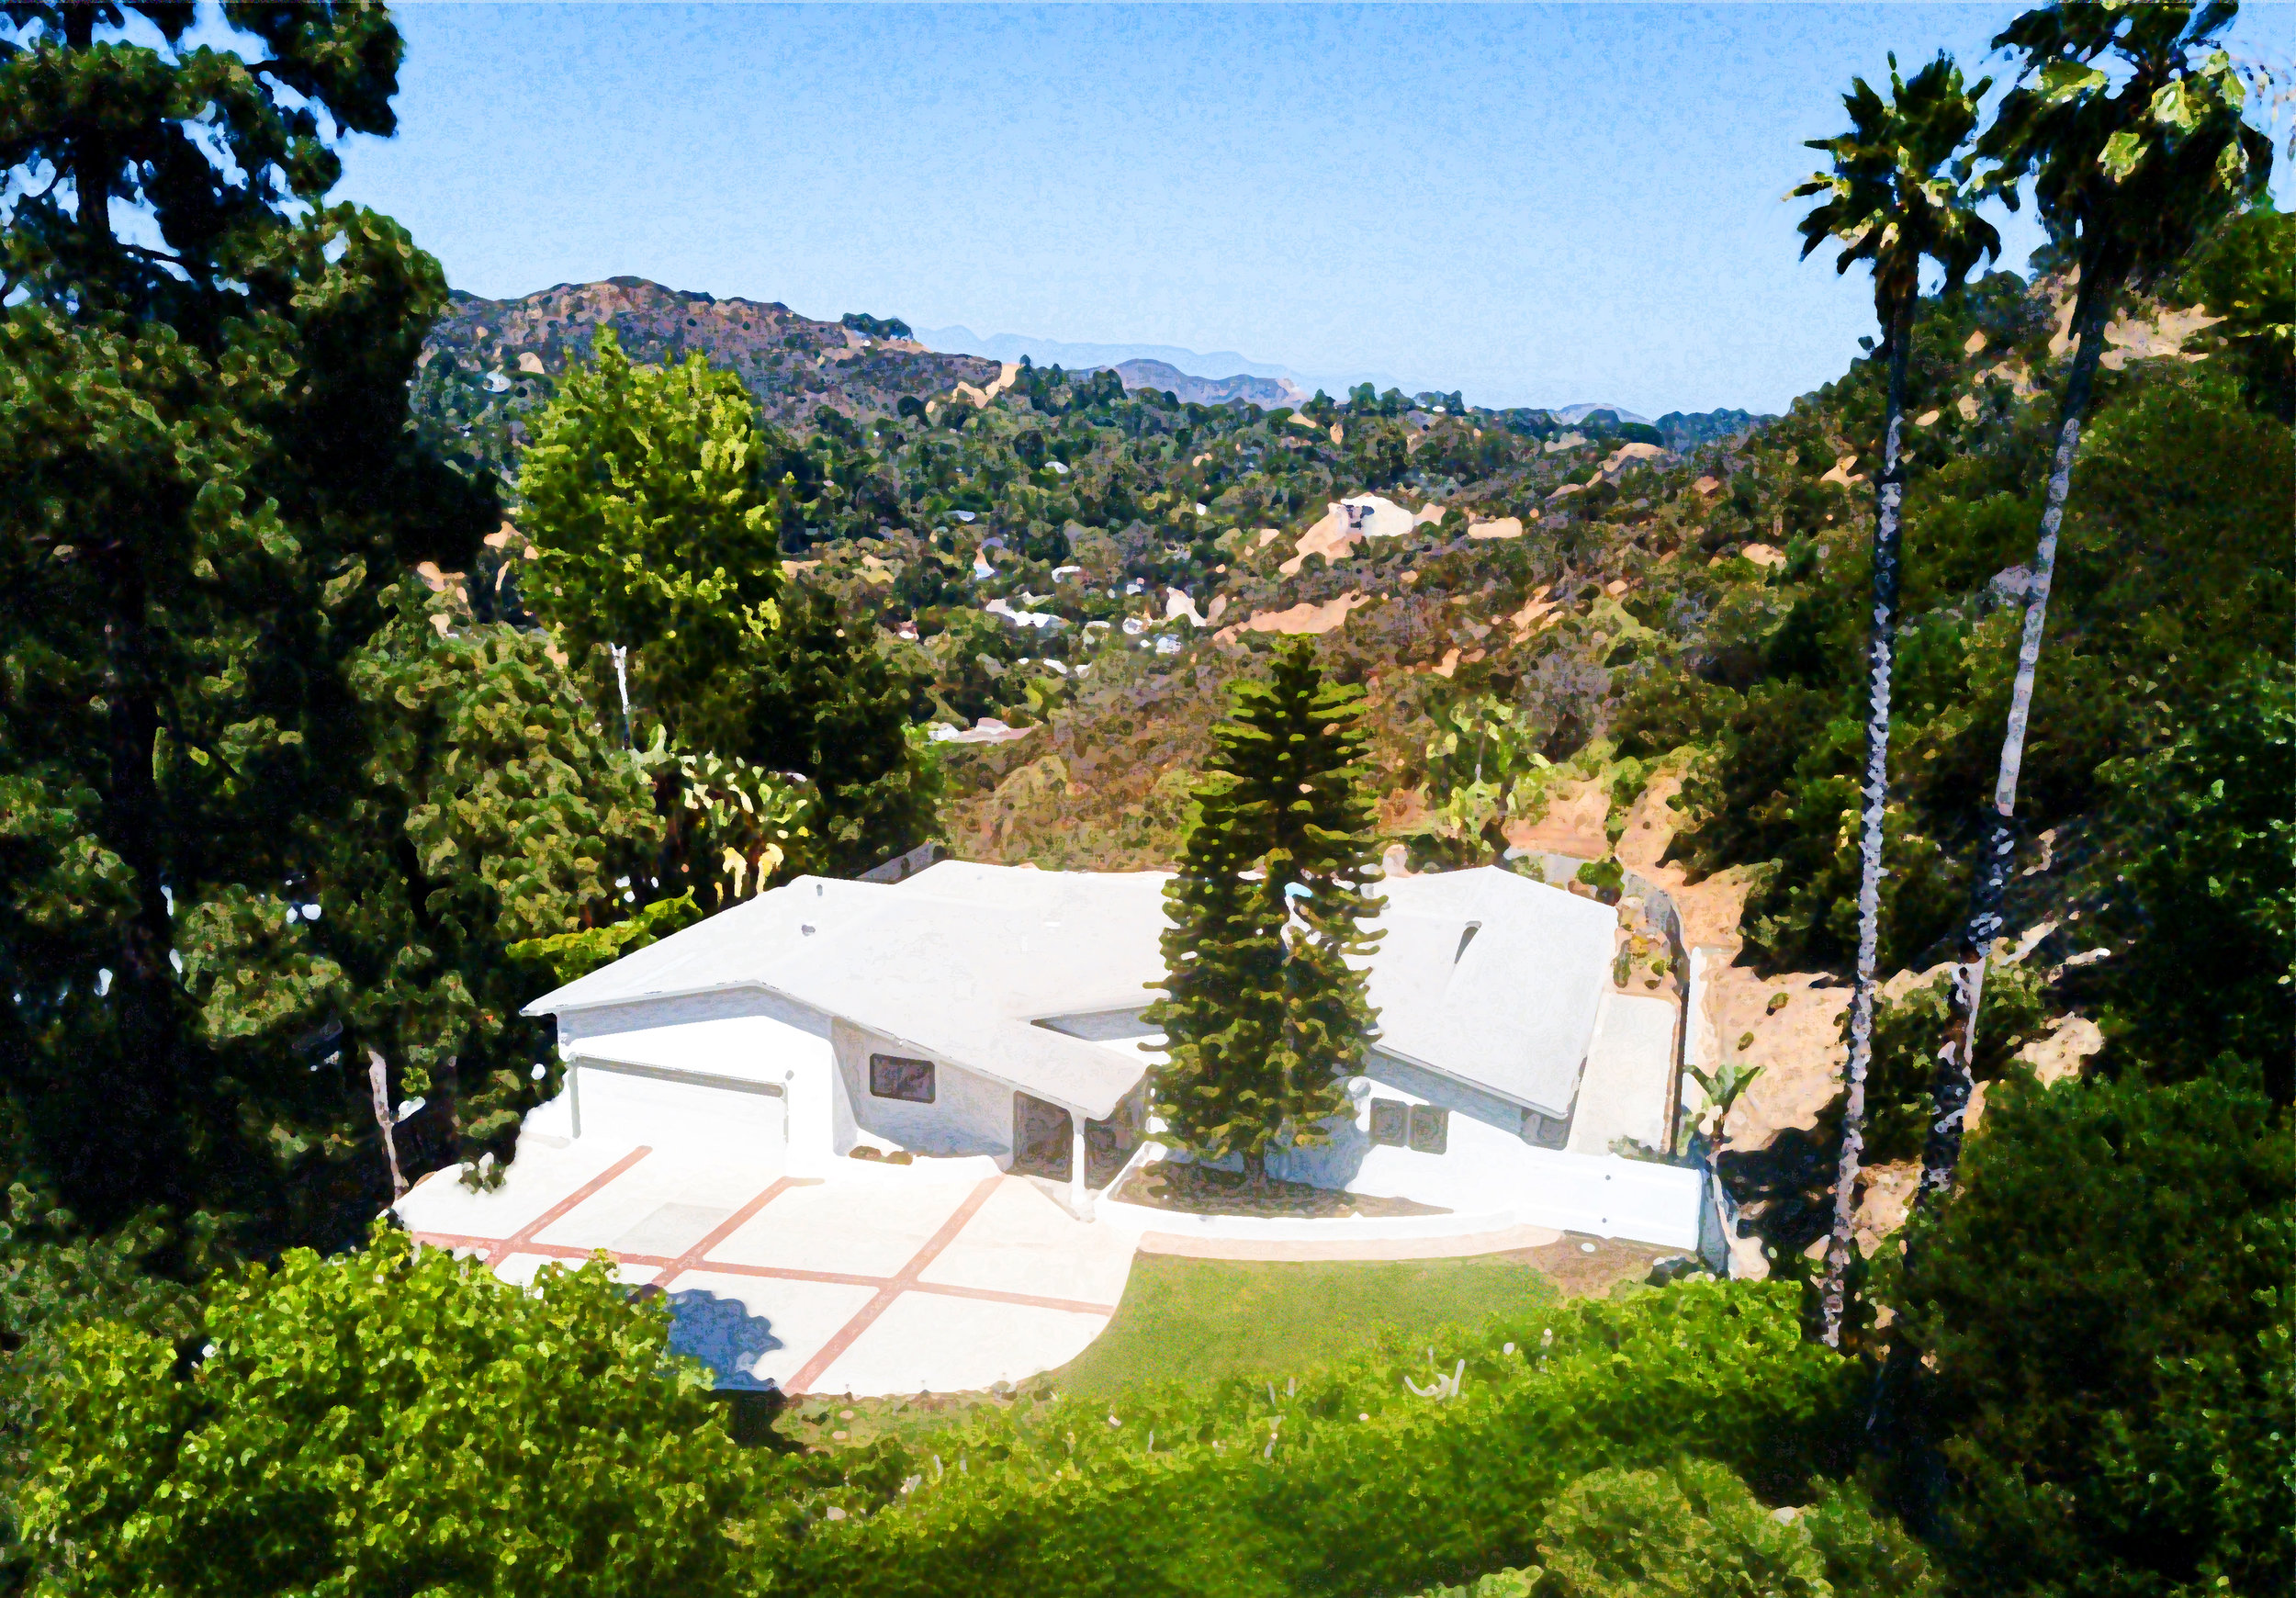 Hollywood - drone-0372-touchedupfilter.jpg